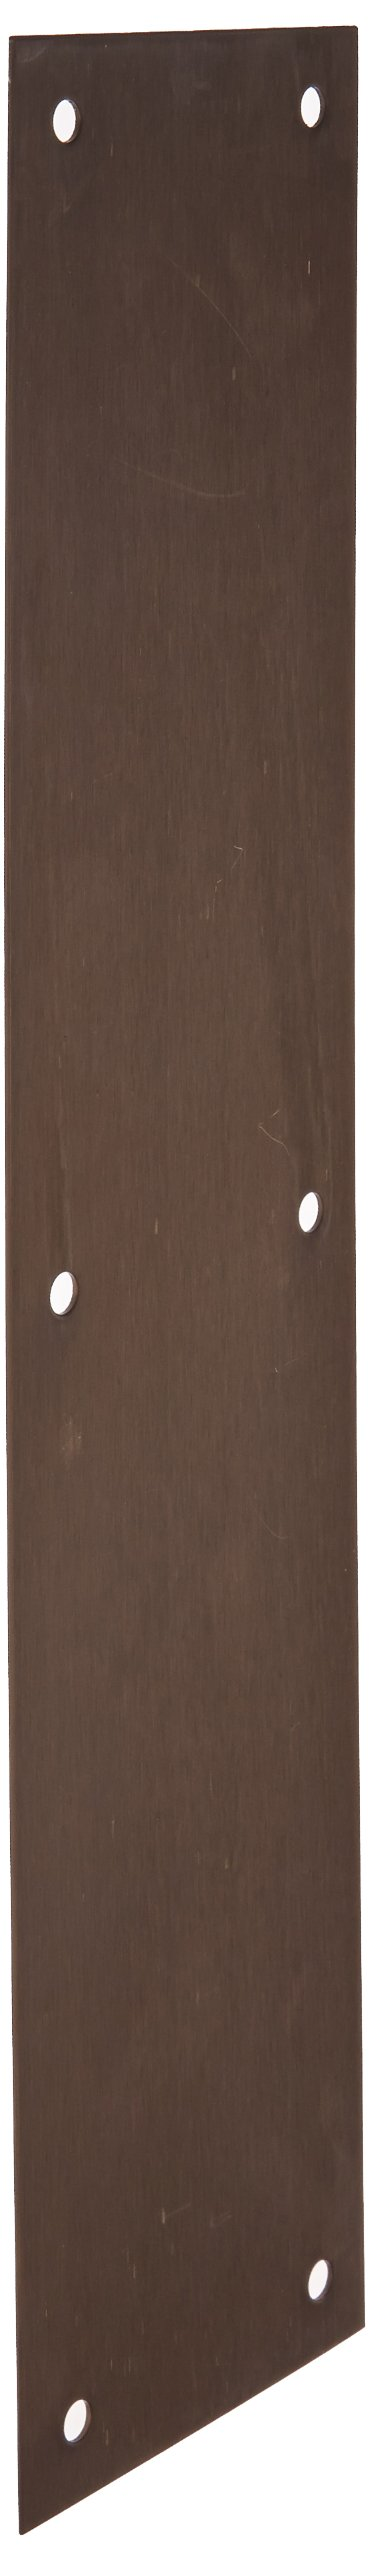 Satin Oxidized Oil Rubbed Finish Rockwood 70B.10B Bronze Standard Push Plate 15 Height x 3-1//2 Width x 0.050 Thick Four Beveled Edges